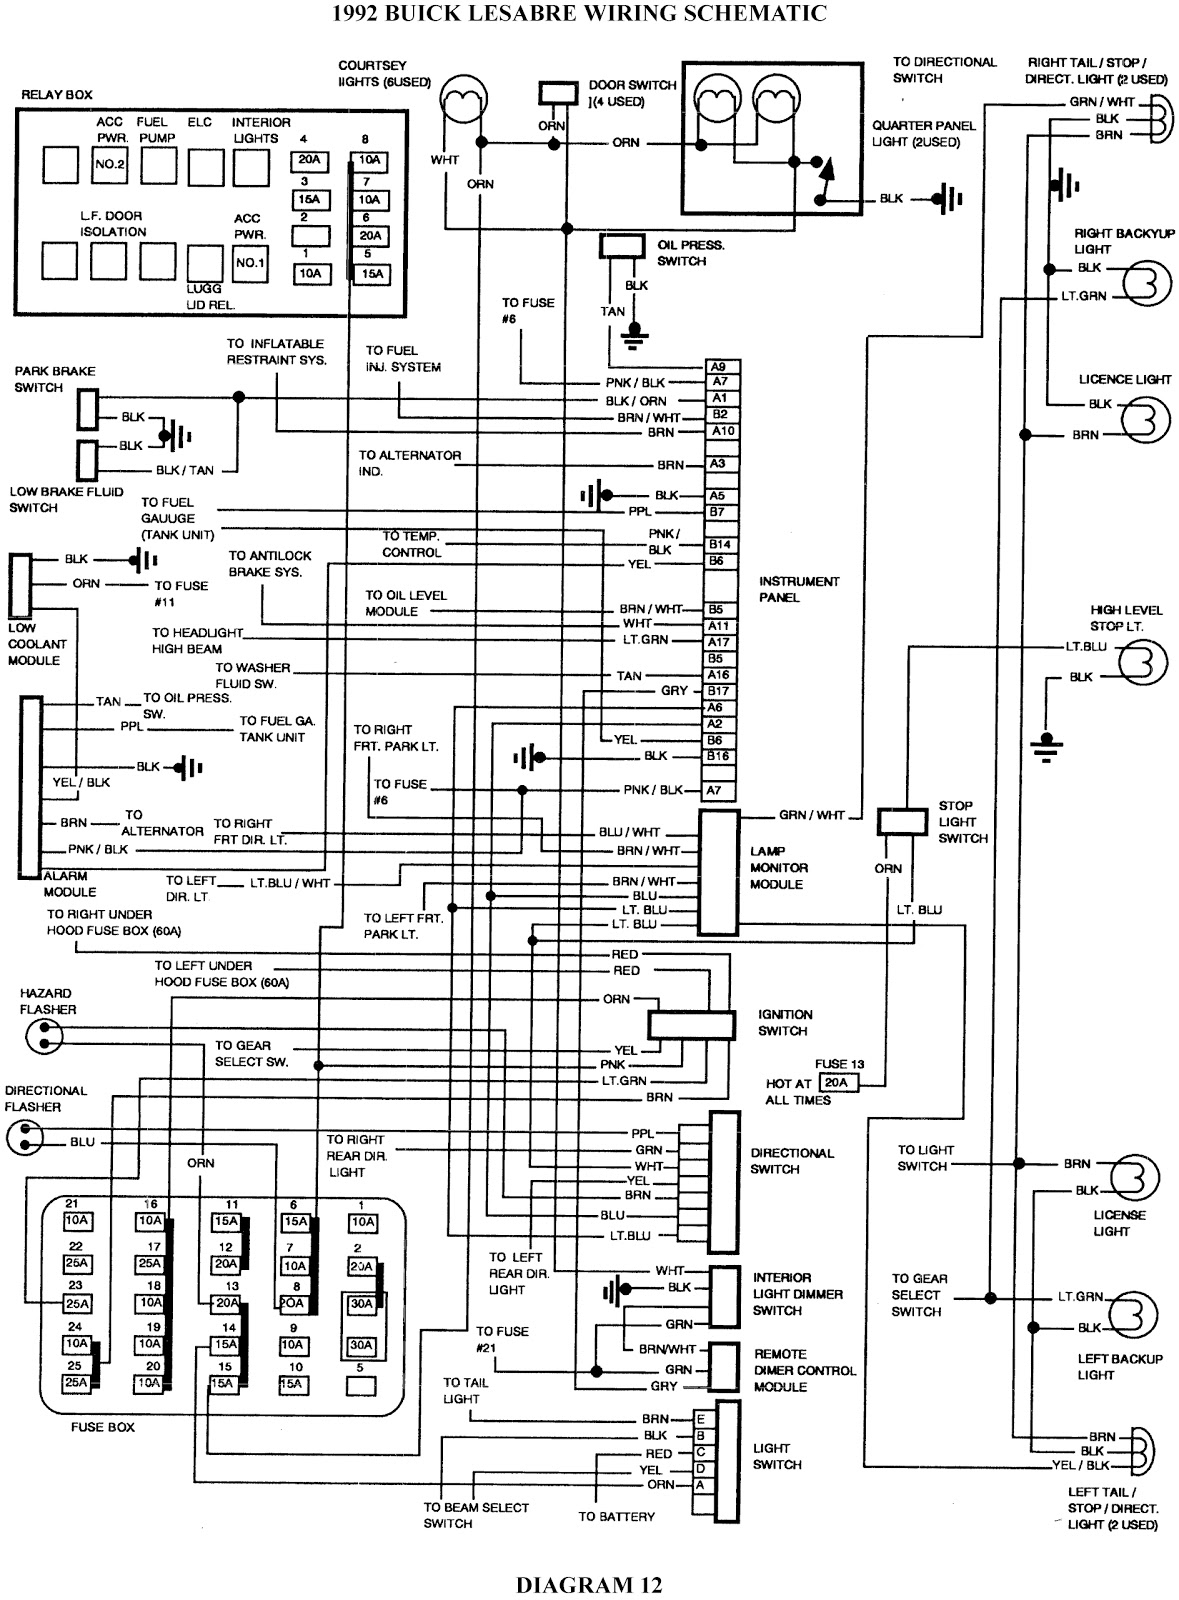 003 Radio Wiring Diagram For Dodge Dakota on